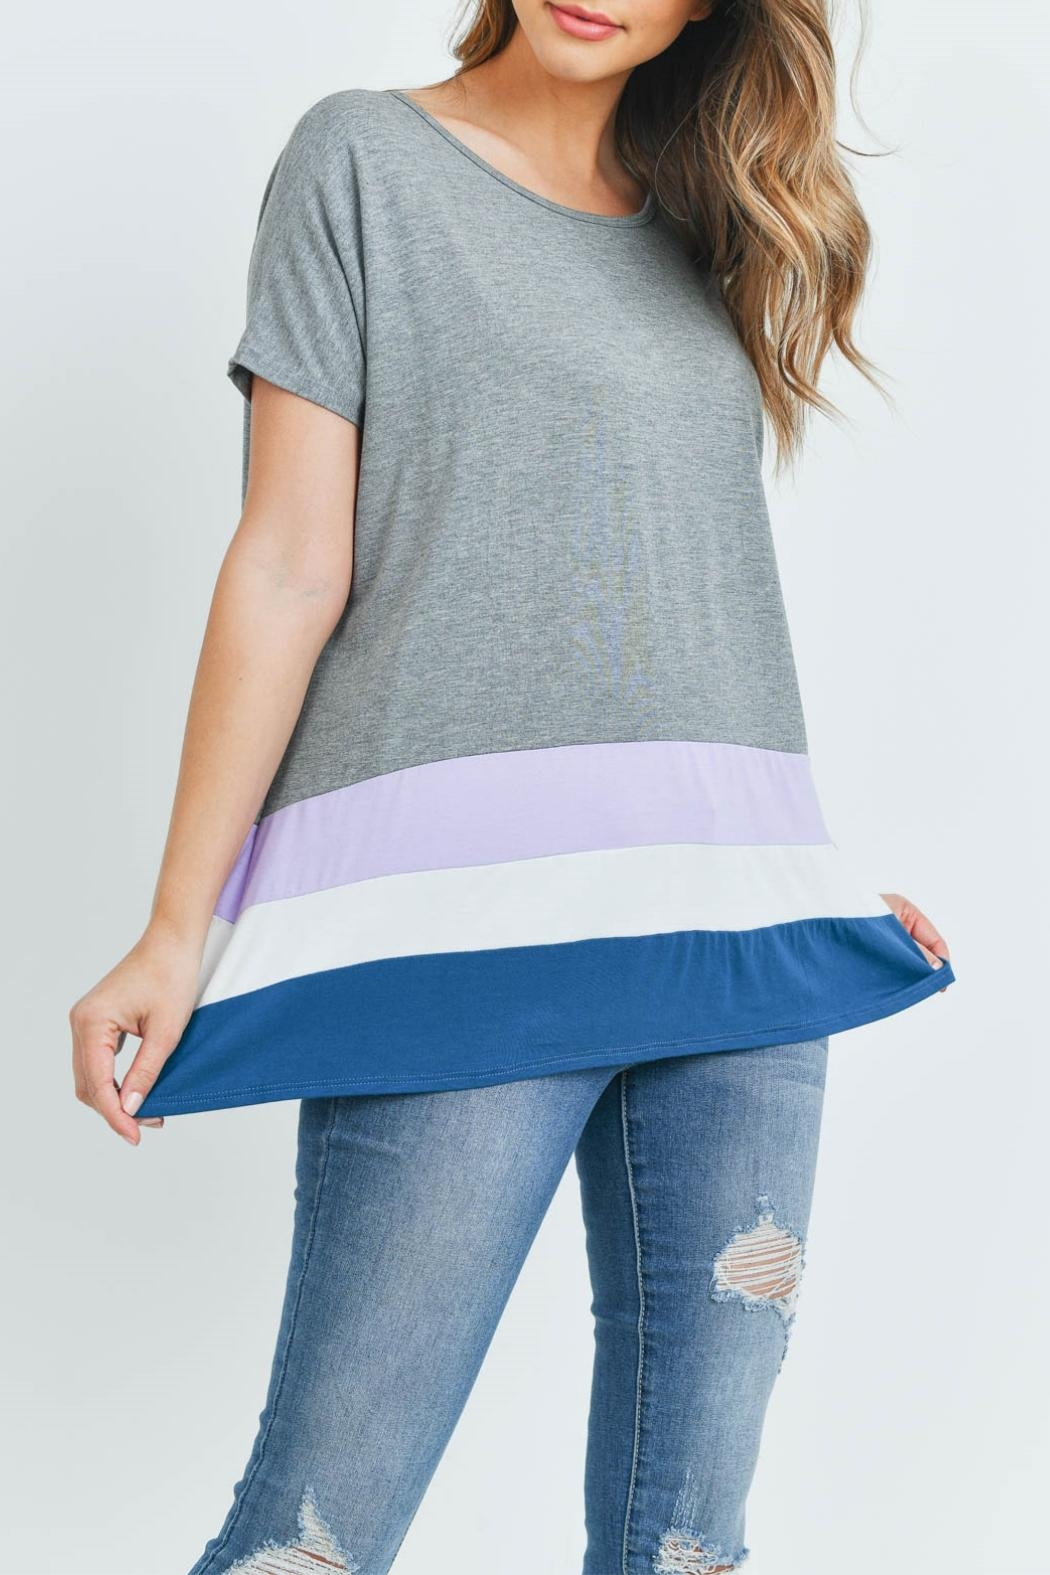 Unbranded Gray Bamboo Top - Front Full Image